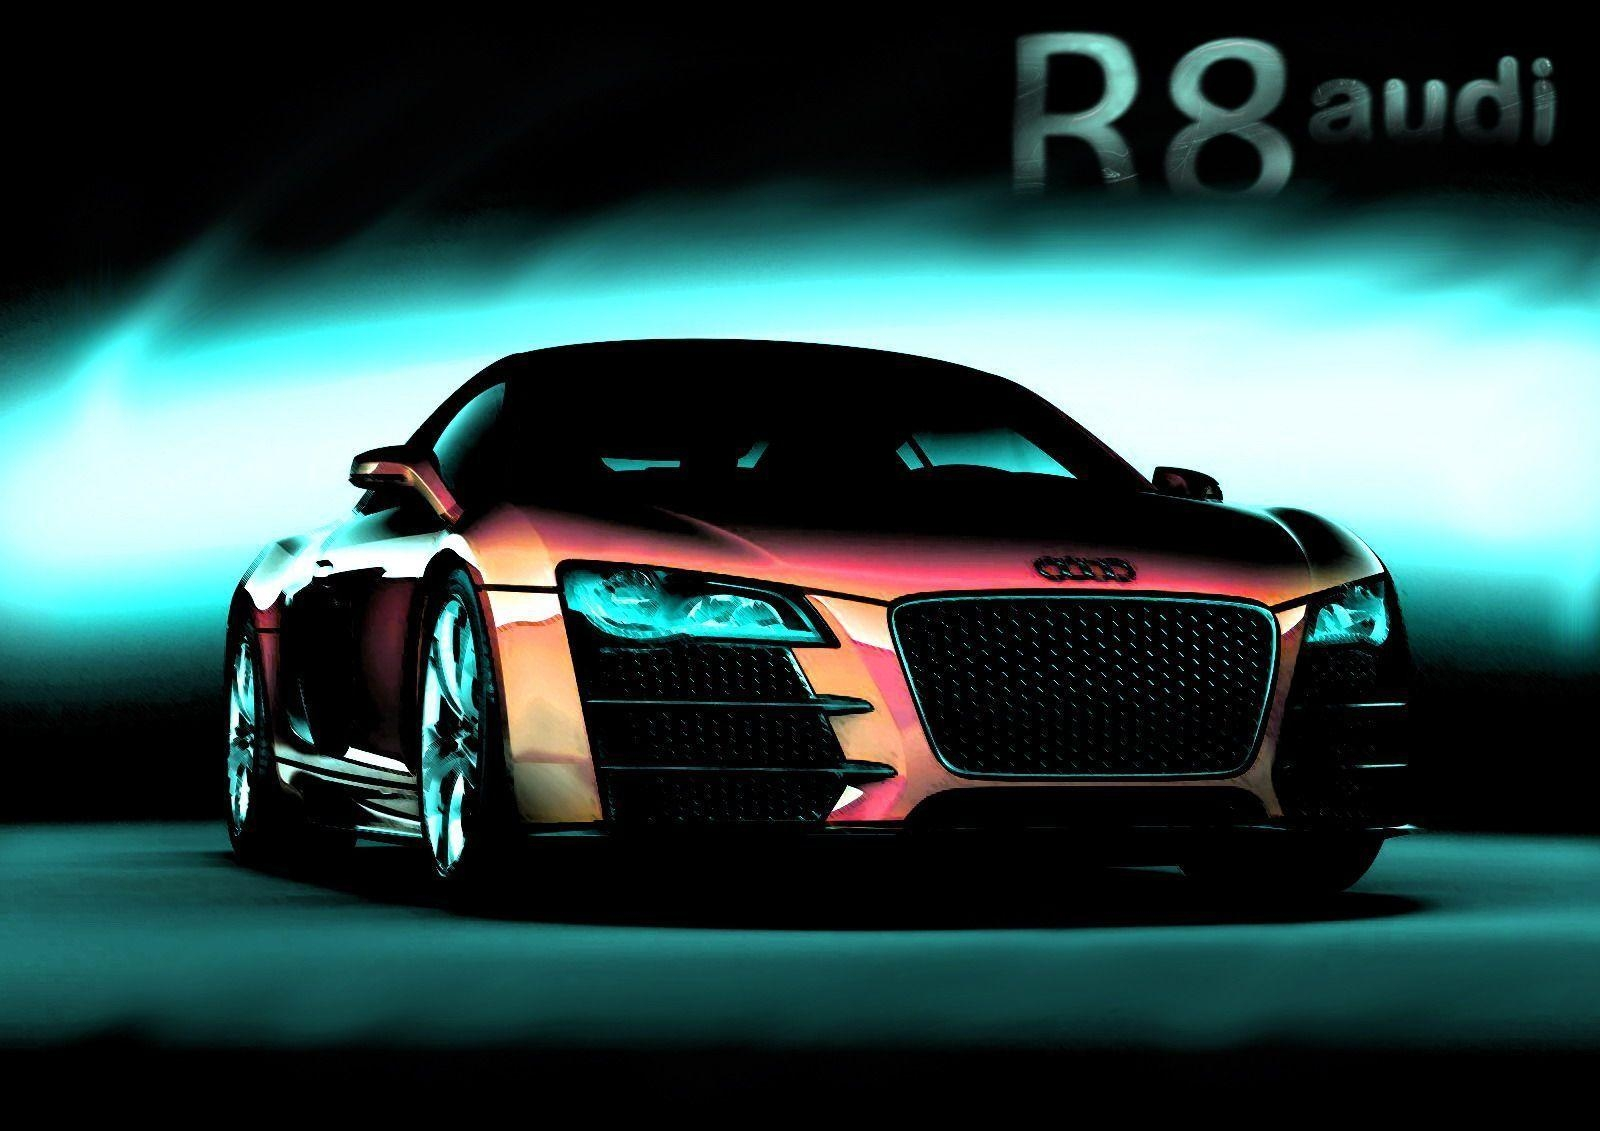 Mostly we like to set our favorite ones wallpapers. Audi R8 Hd Wallpapers Background Images Photos Pictures Yl Computing